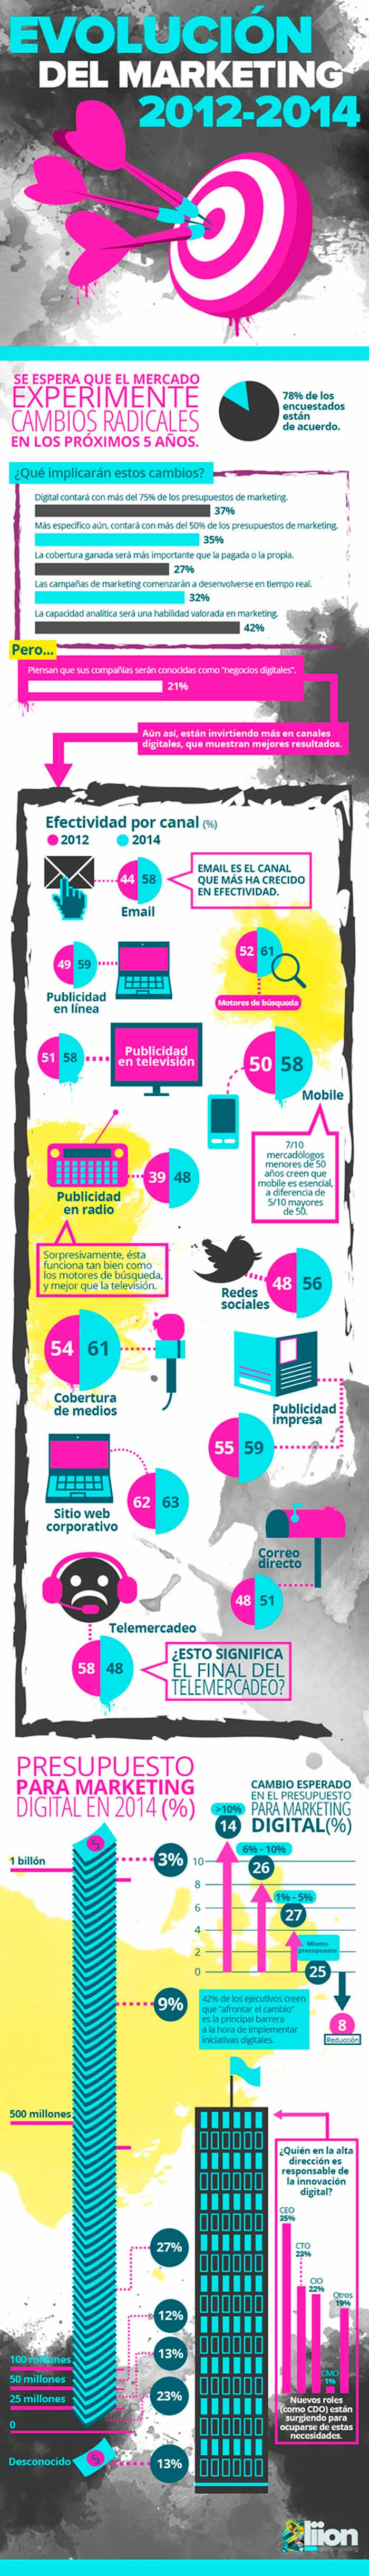 Infografia sobre la evolucion del marketing del 2012 al 2014